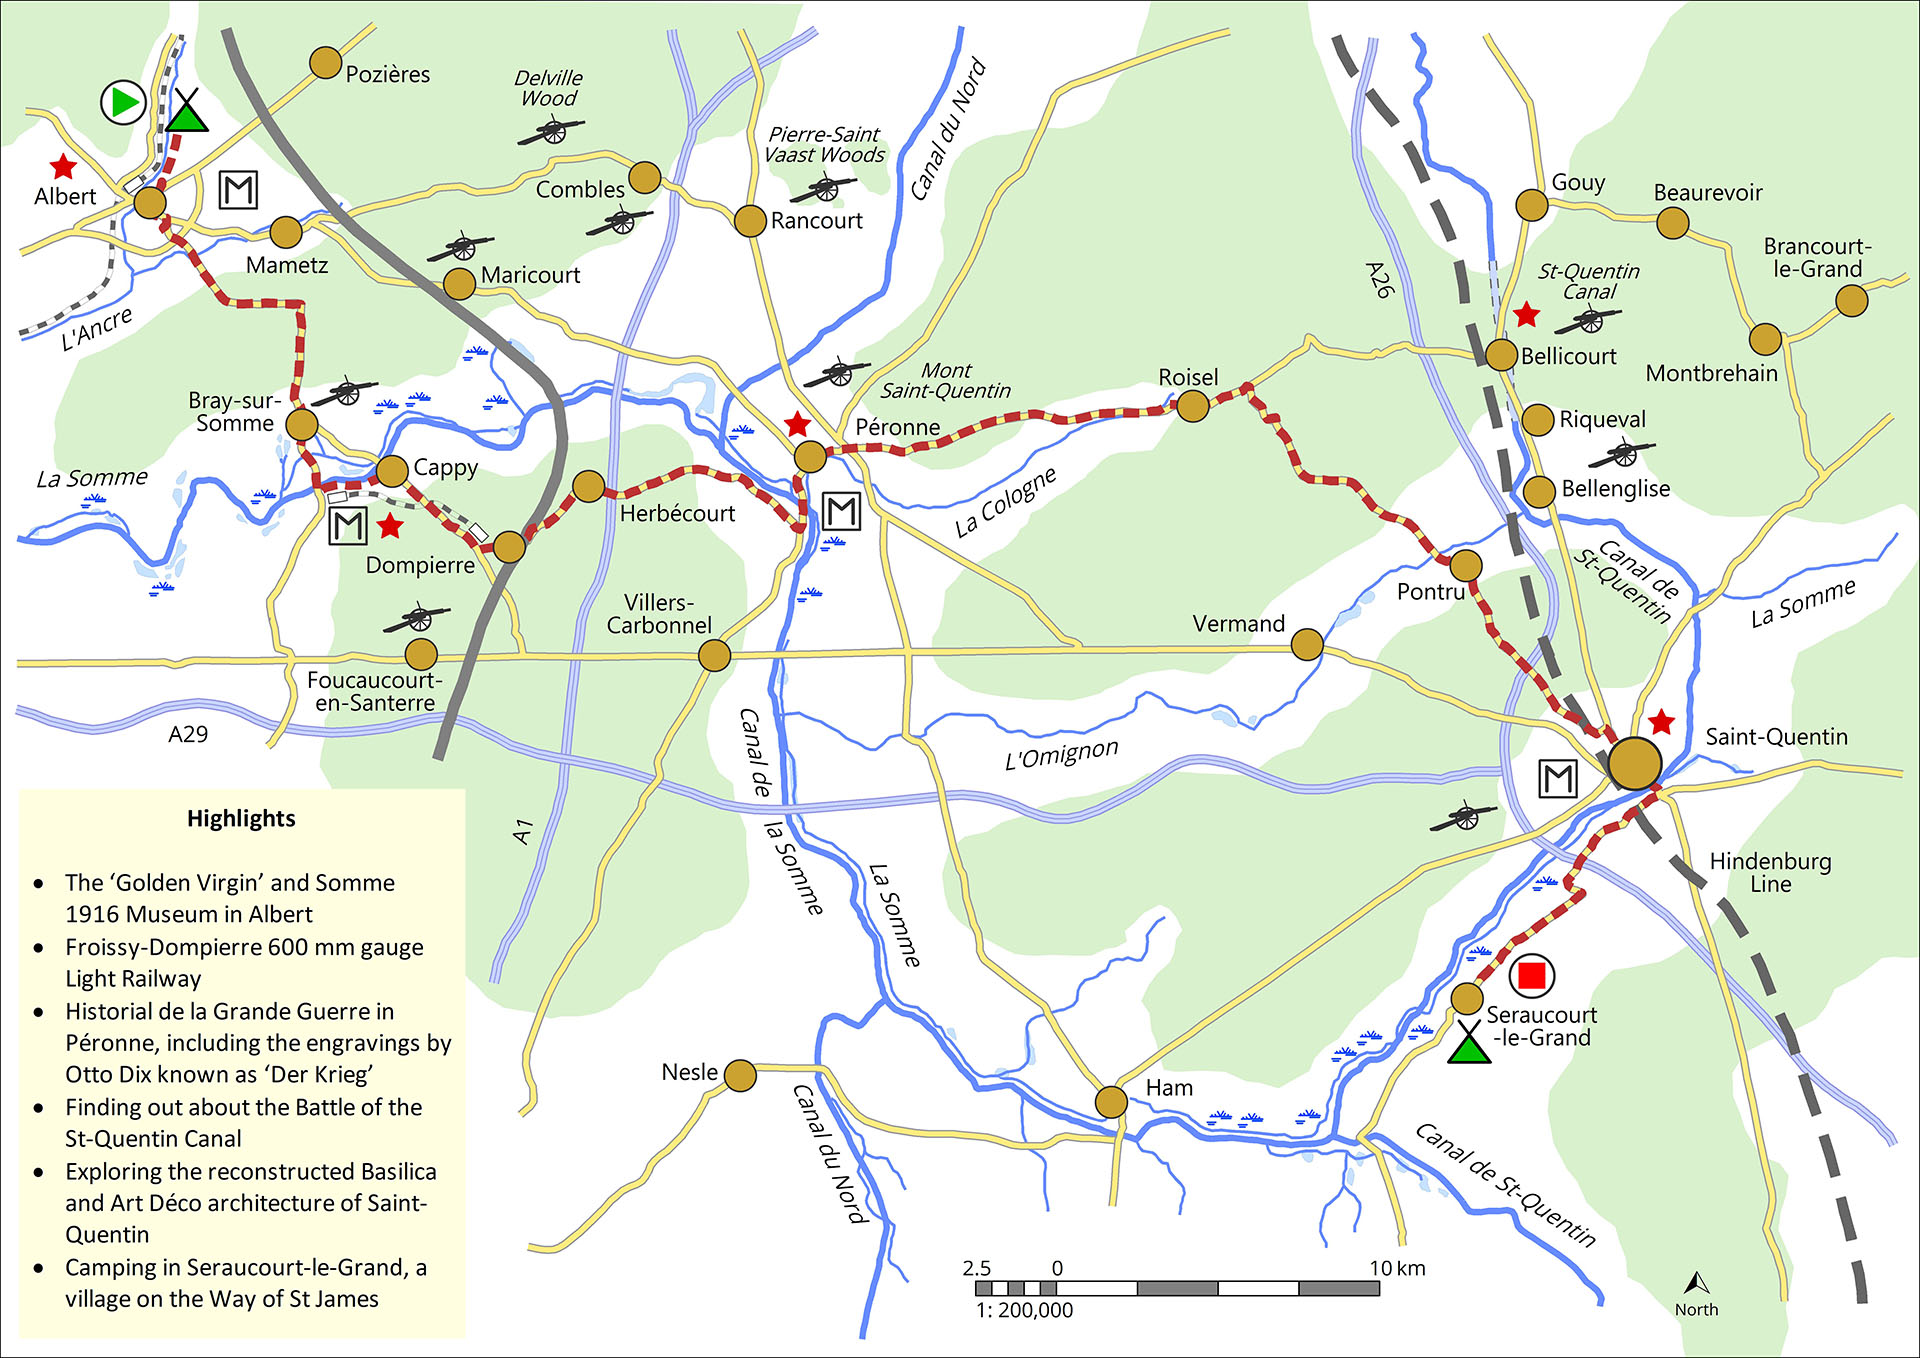 Ride (red dashed line) from Albert to Seraucourt-le-Grand passing through Péronne with its excellent 'Historial de la Grande Guerre' museum, and St-Quentin with its fabulous Art Deco buildings dating from reconstruction in the 1920s - Map © Nigel Bruce (full legend available)